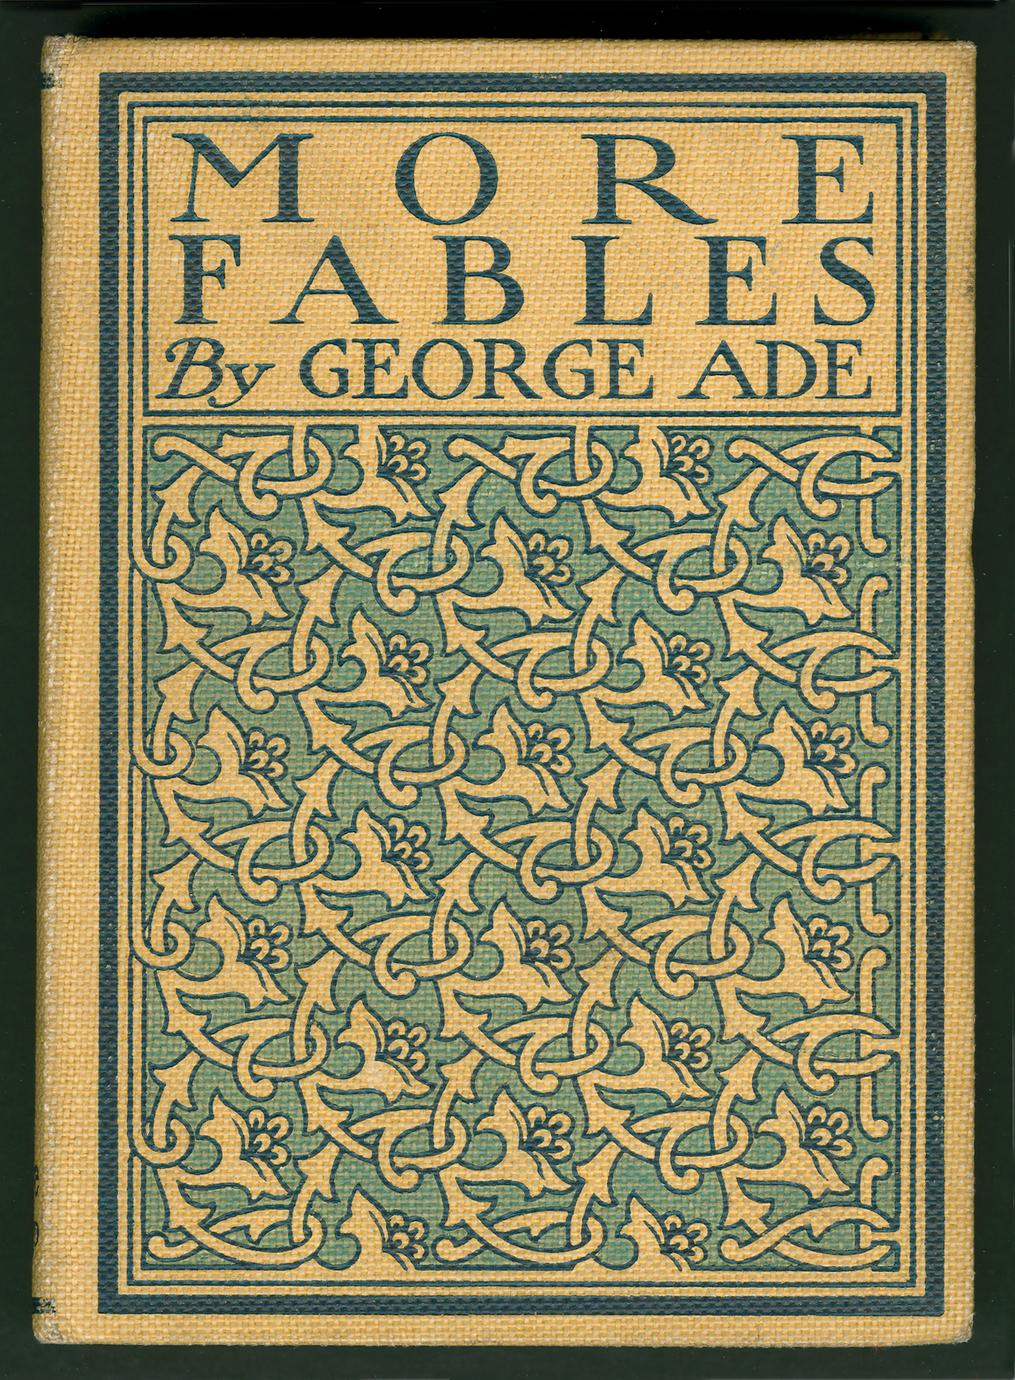 More fables (1 of 3)